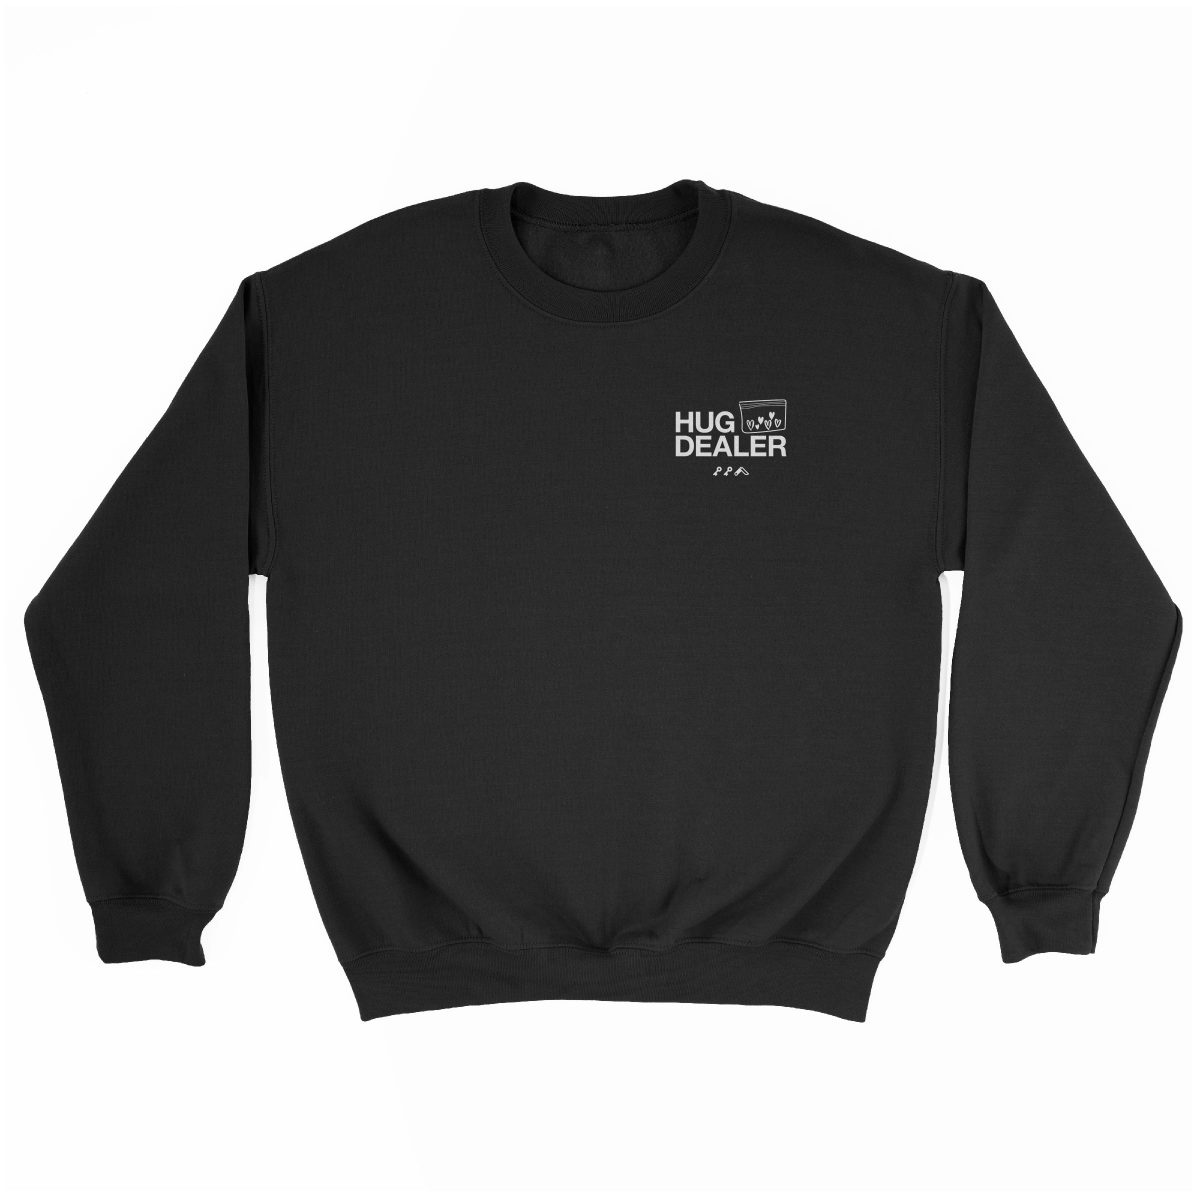 HUG DEALER sweatshirt in black by kikicutt sweatshirt store